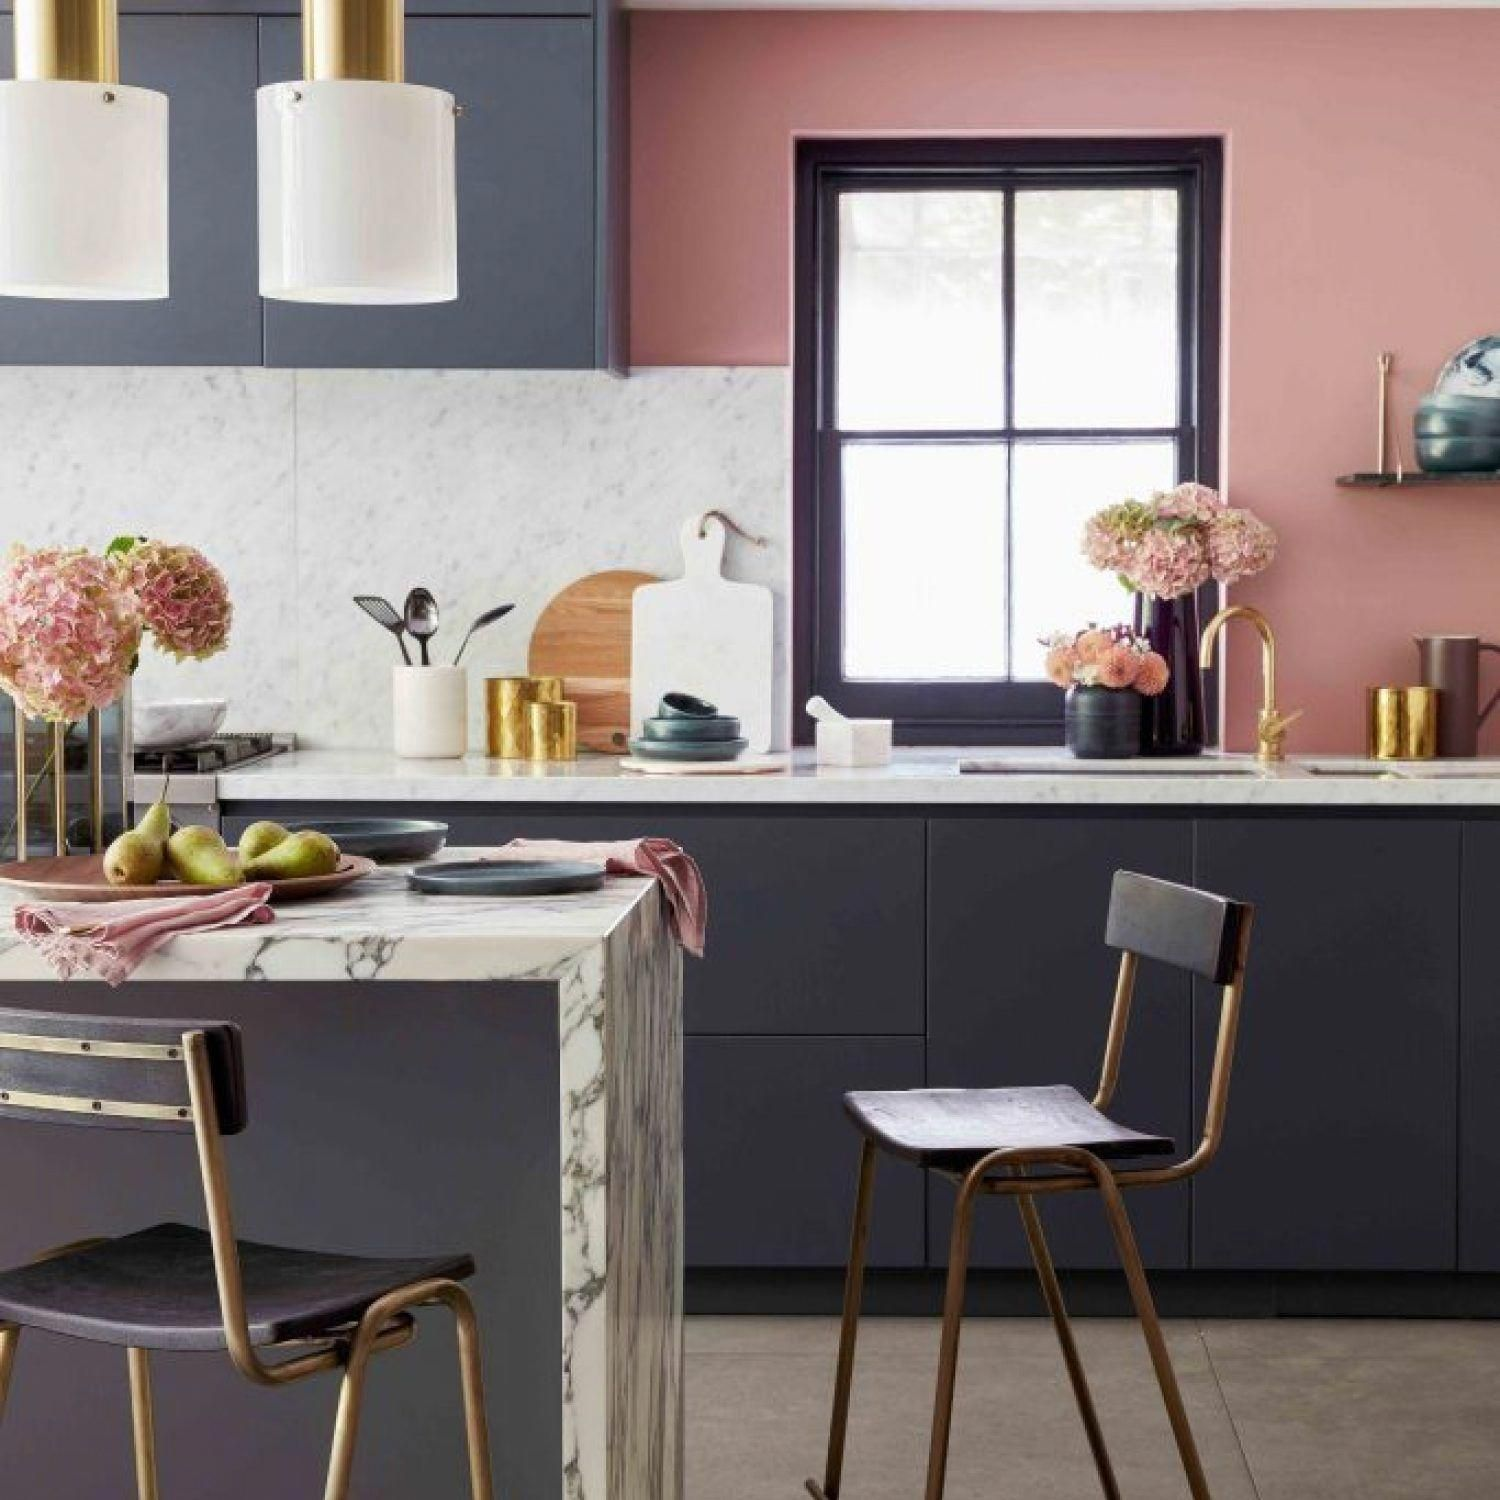 44 outrageous quirky kitchen diner ideas tips freehomeideas com quirkyhomedecor kitchen on kitchen ideas quirky id=36380